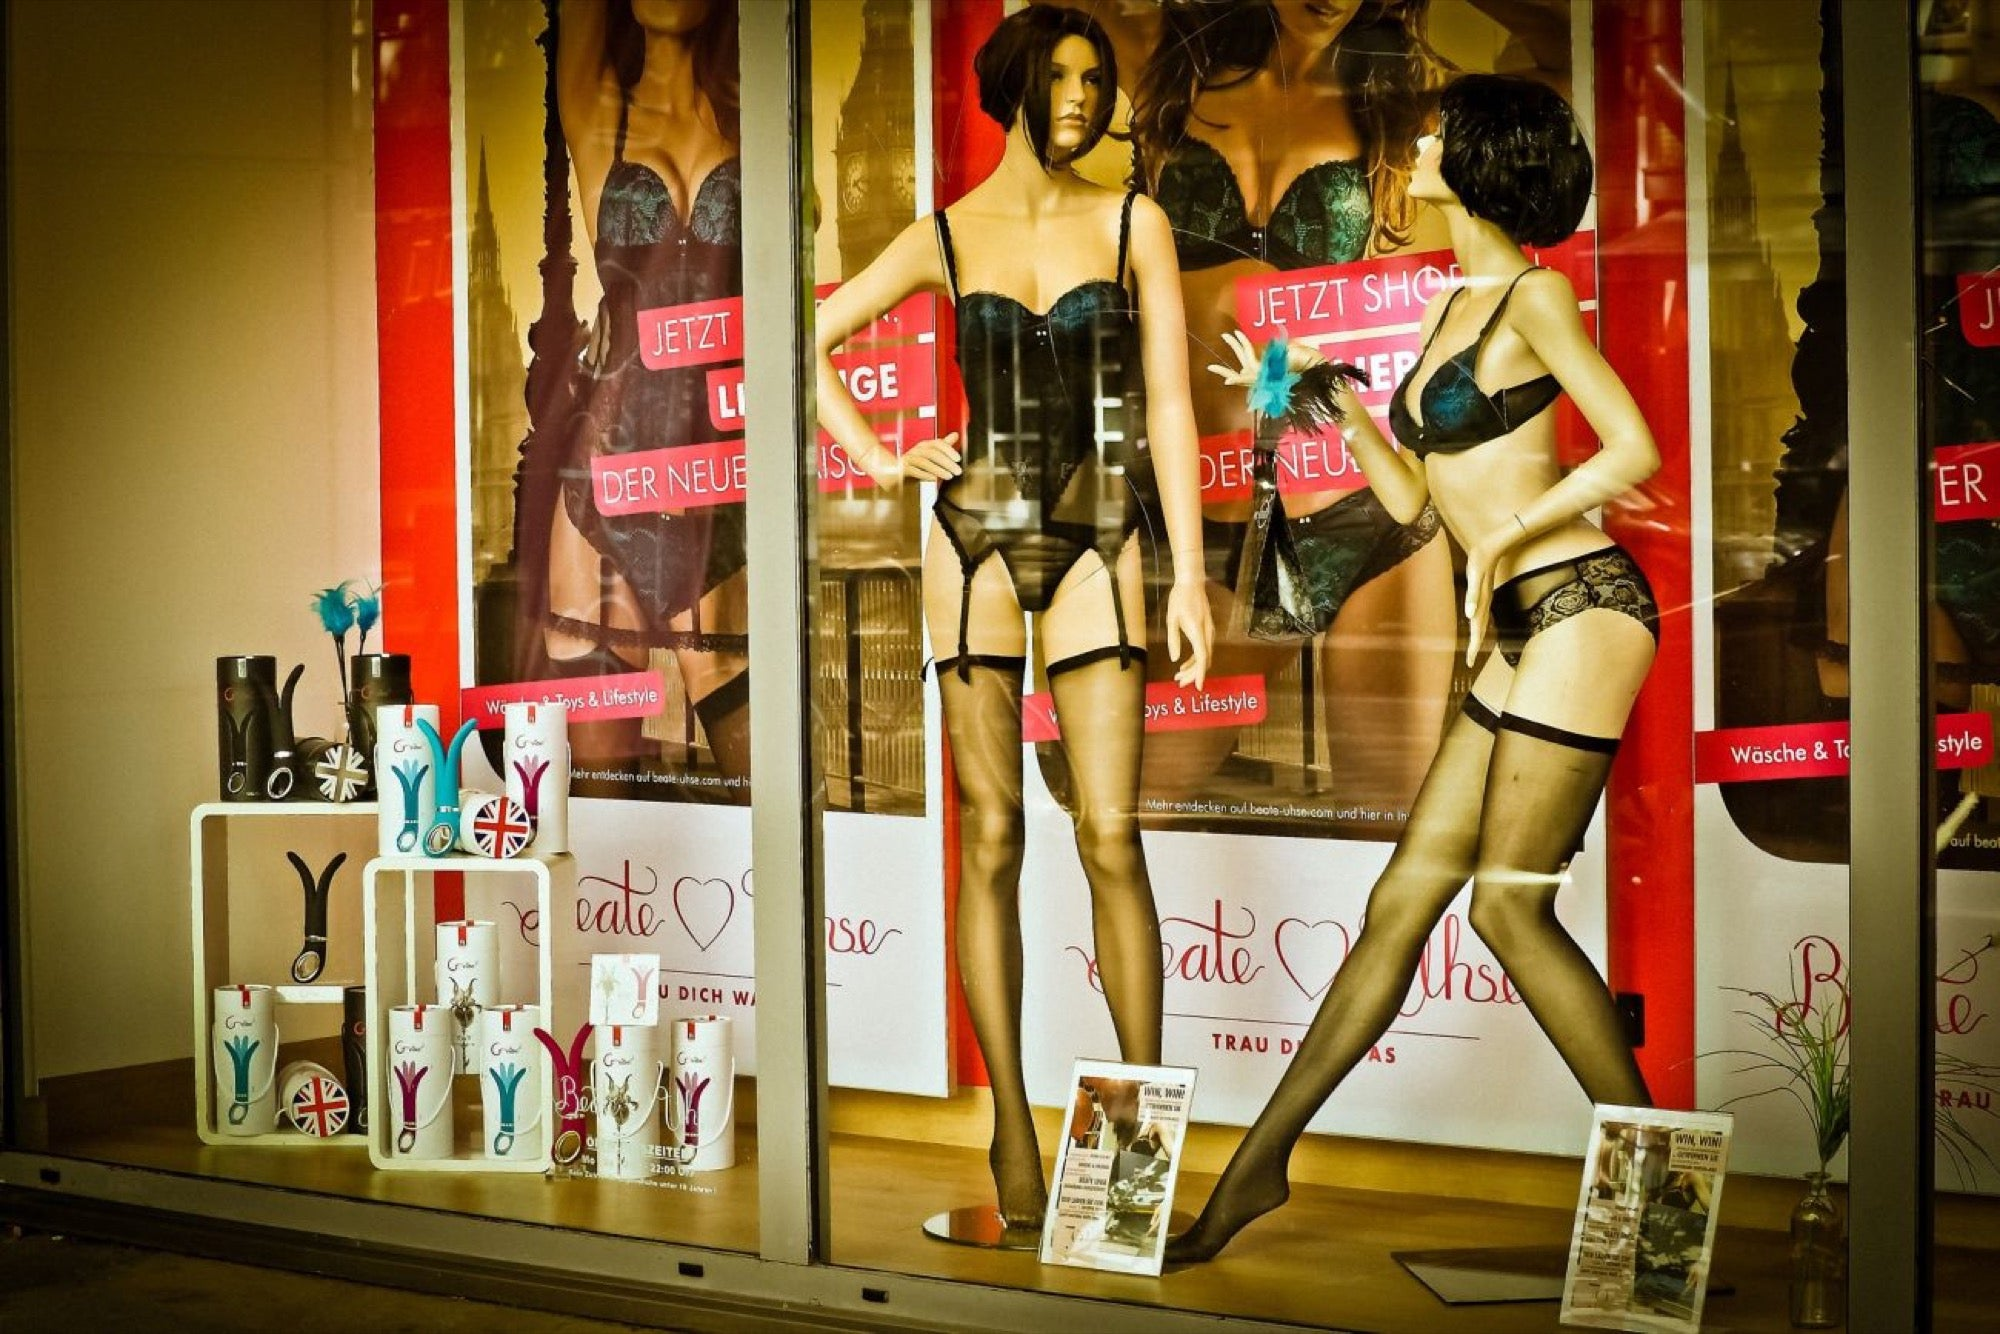 Marketing and growth strategies for an adult sex toys store